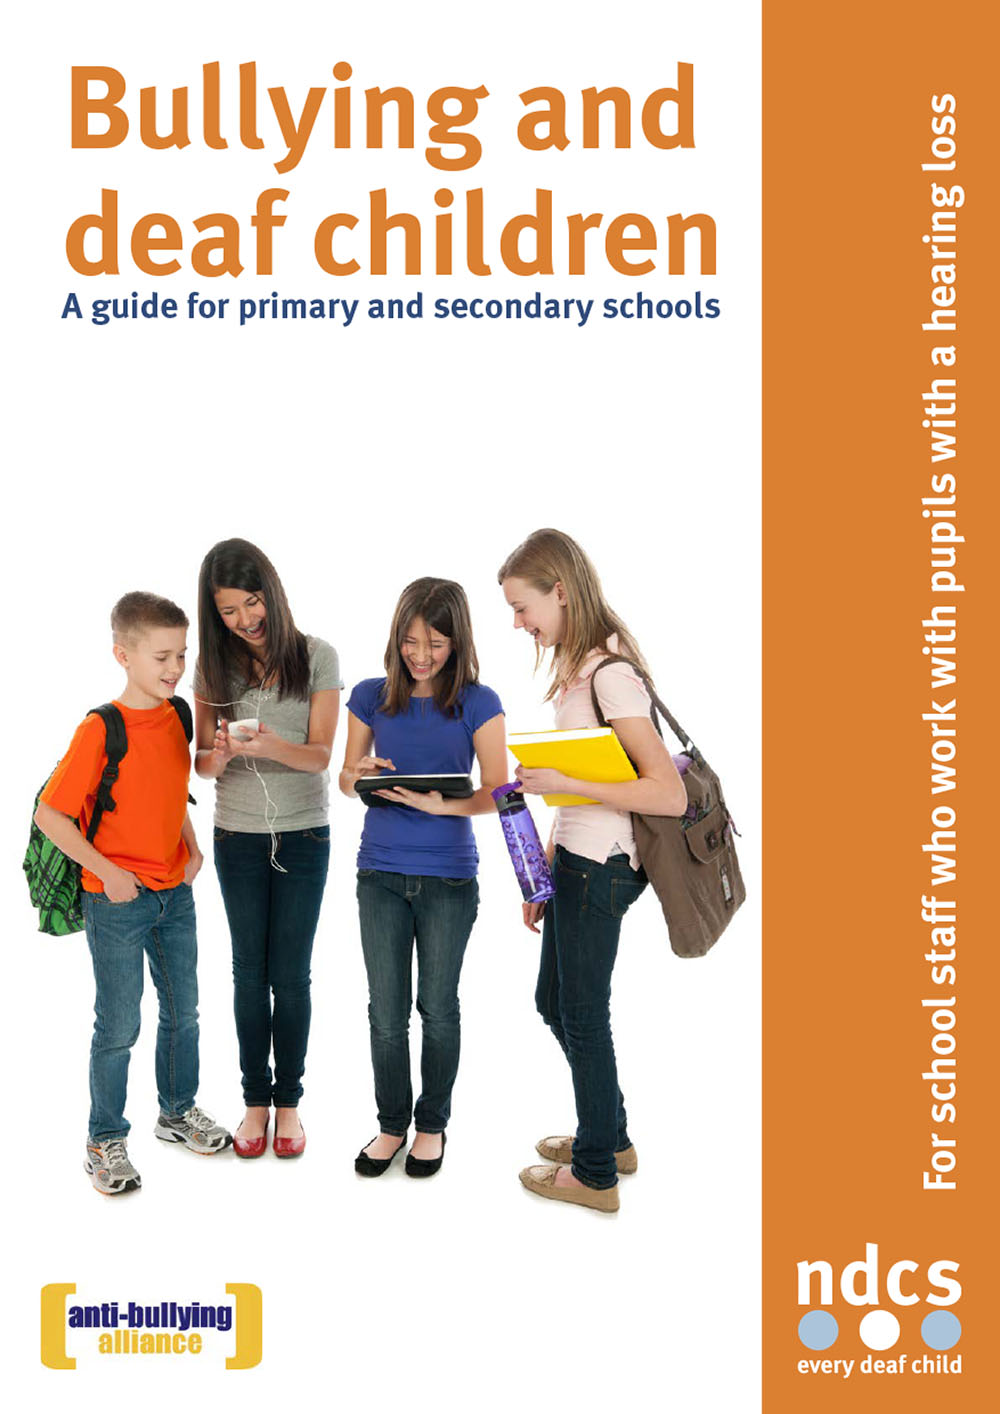 Bullying and Deaf Children: A guide for primary and secondary schools